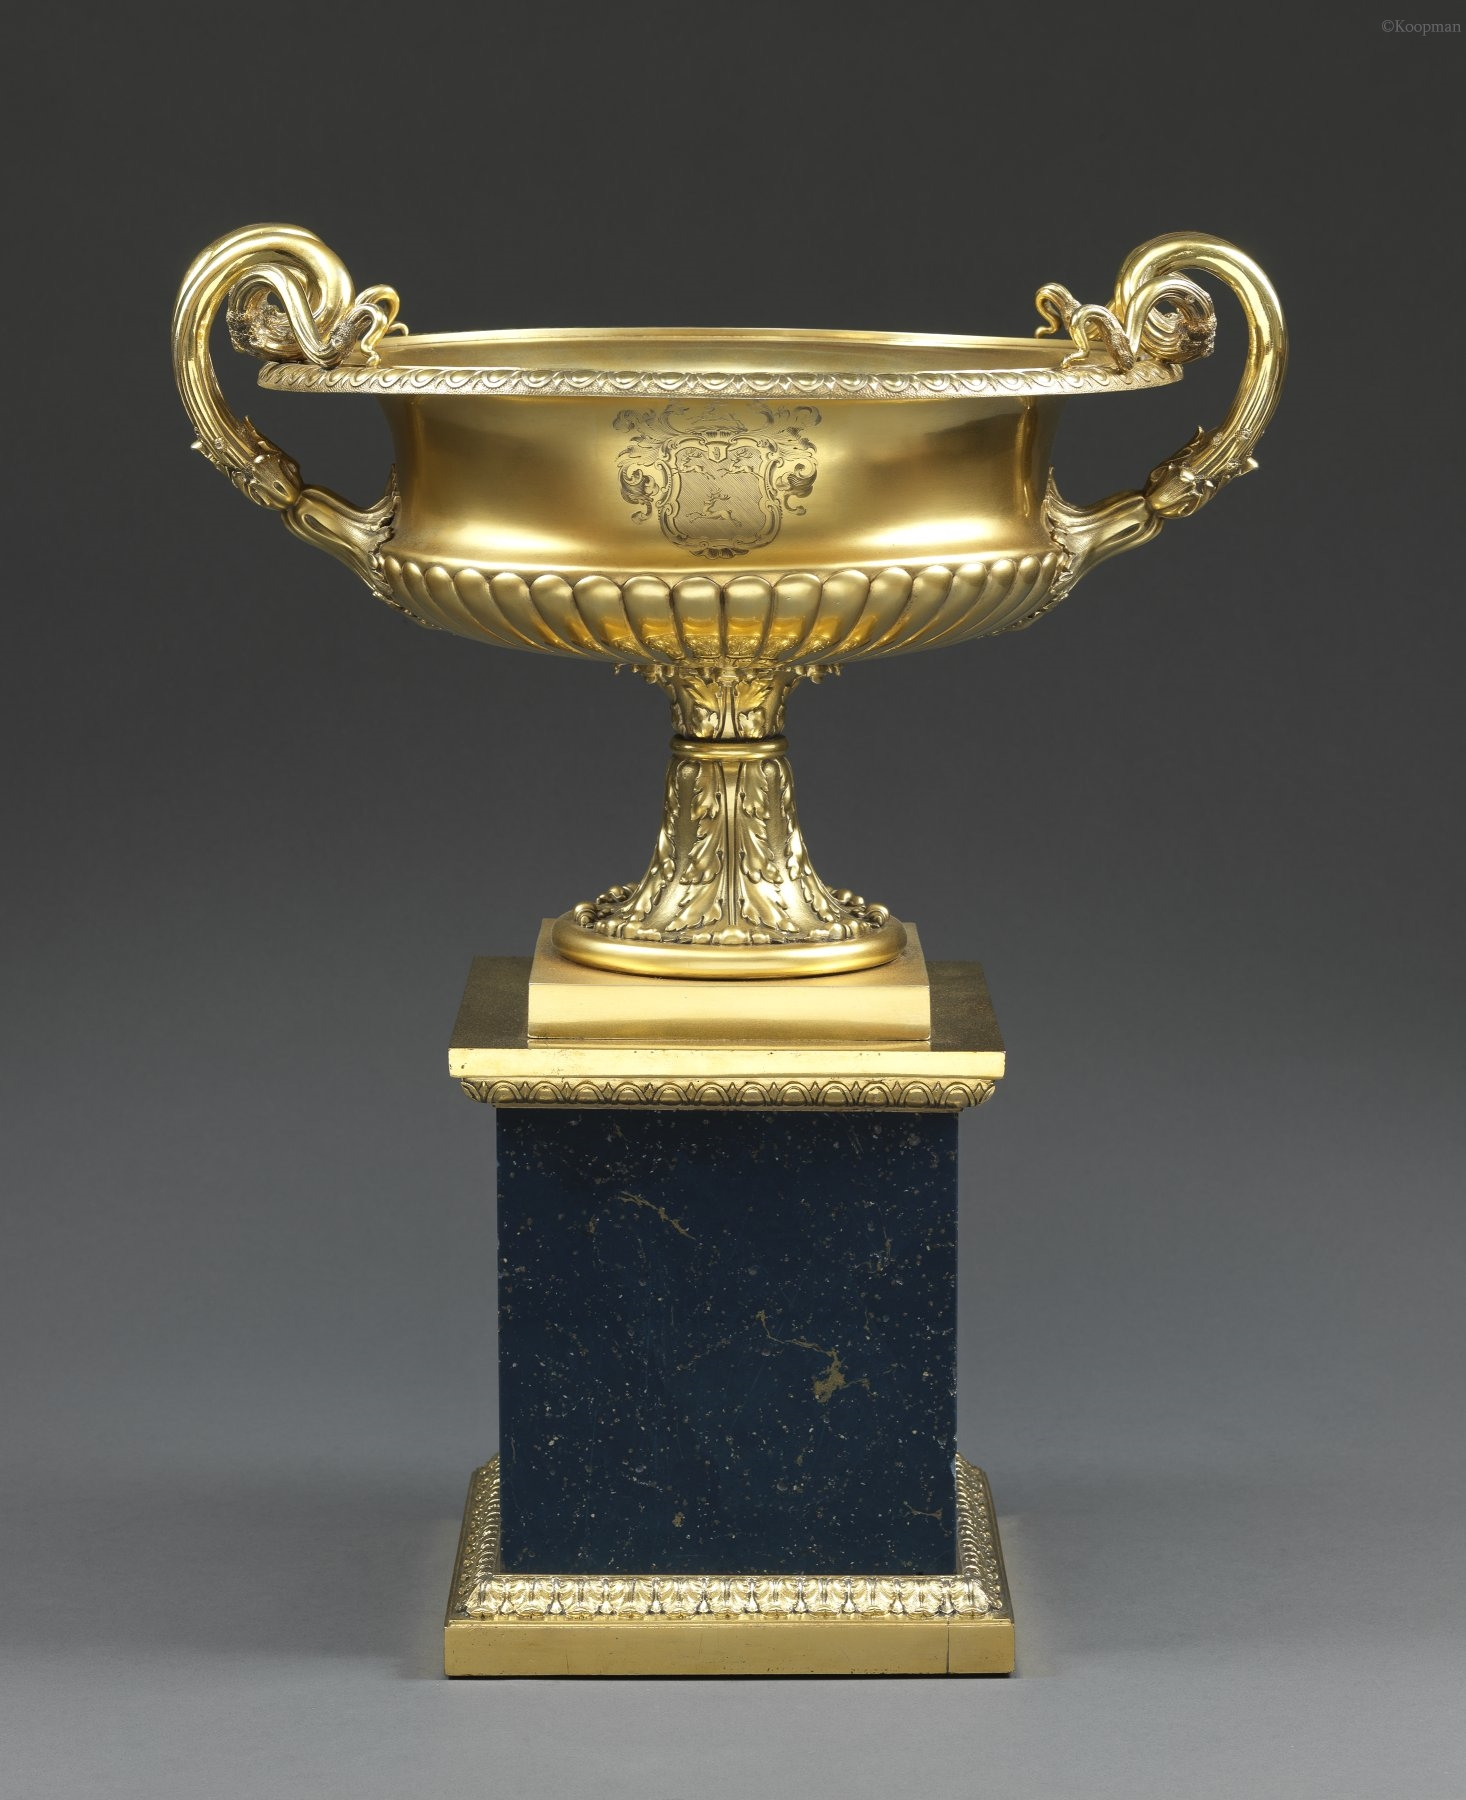 A William IV Vase on Plinth